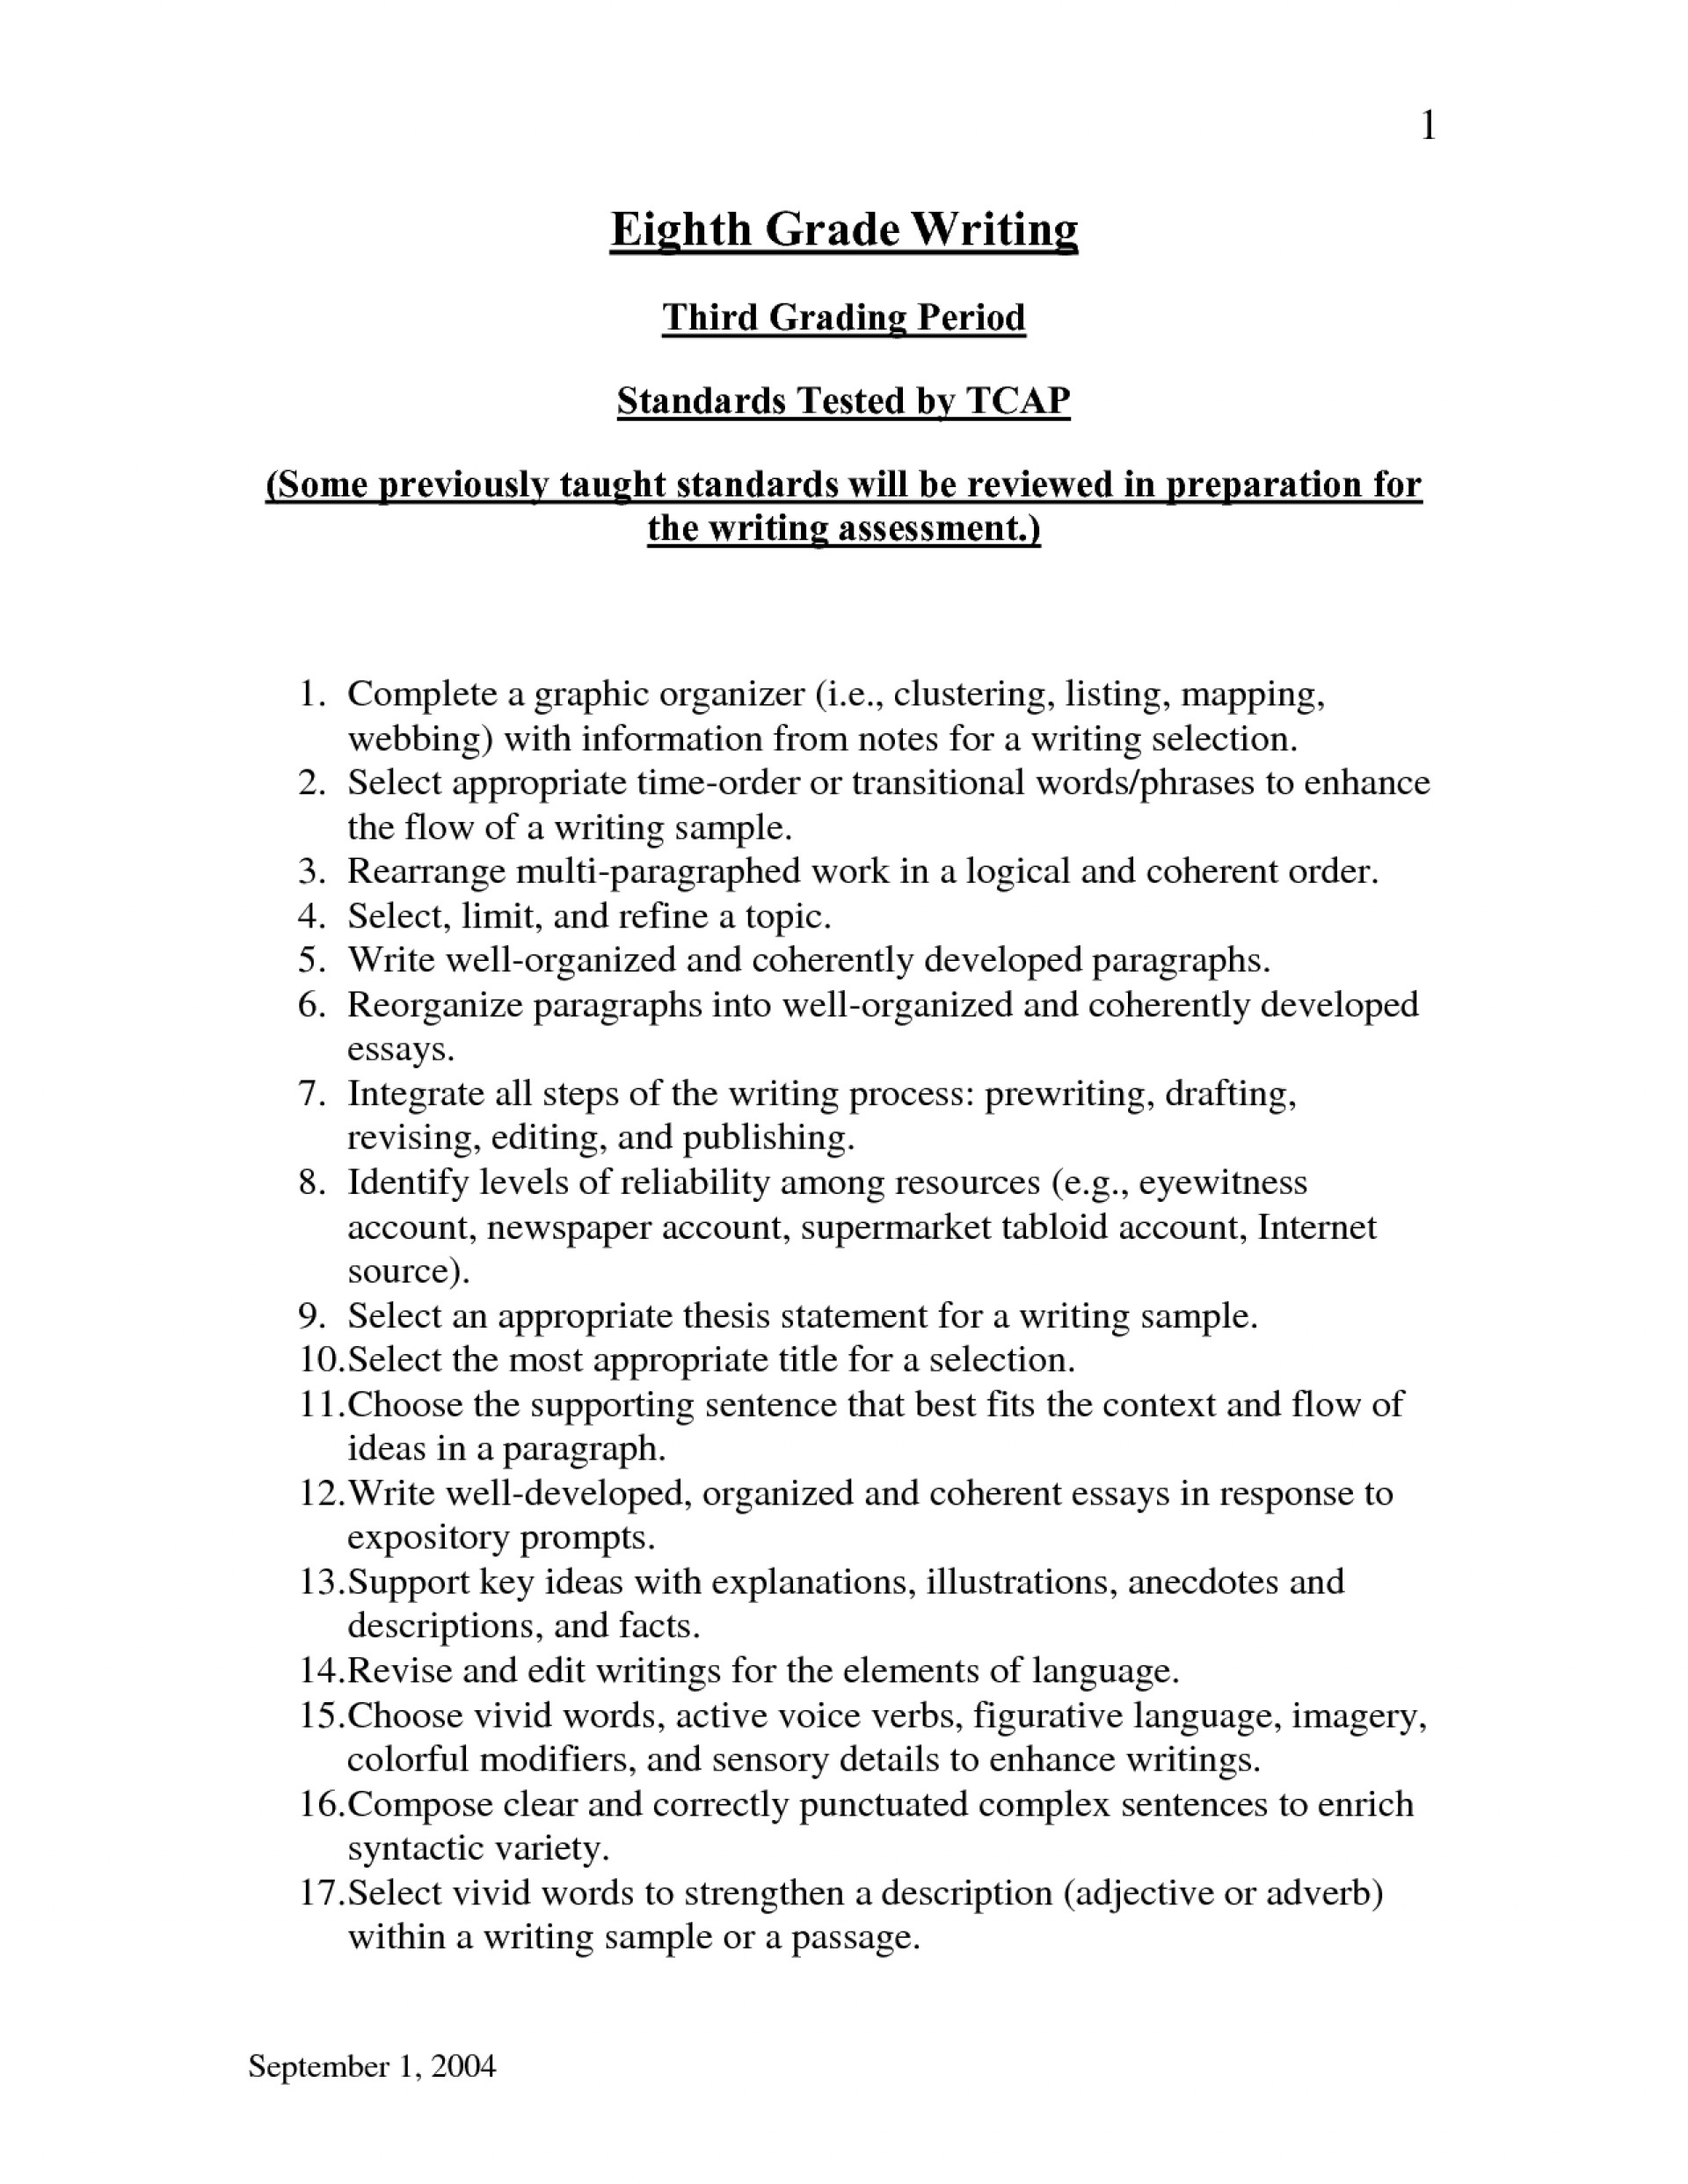 008 Expository Essays 1341145155 Essay Help Stunning Examples Writing For Middle School Paper Definition 1920